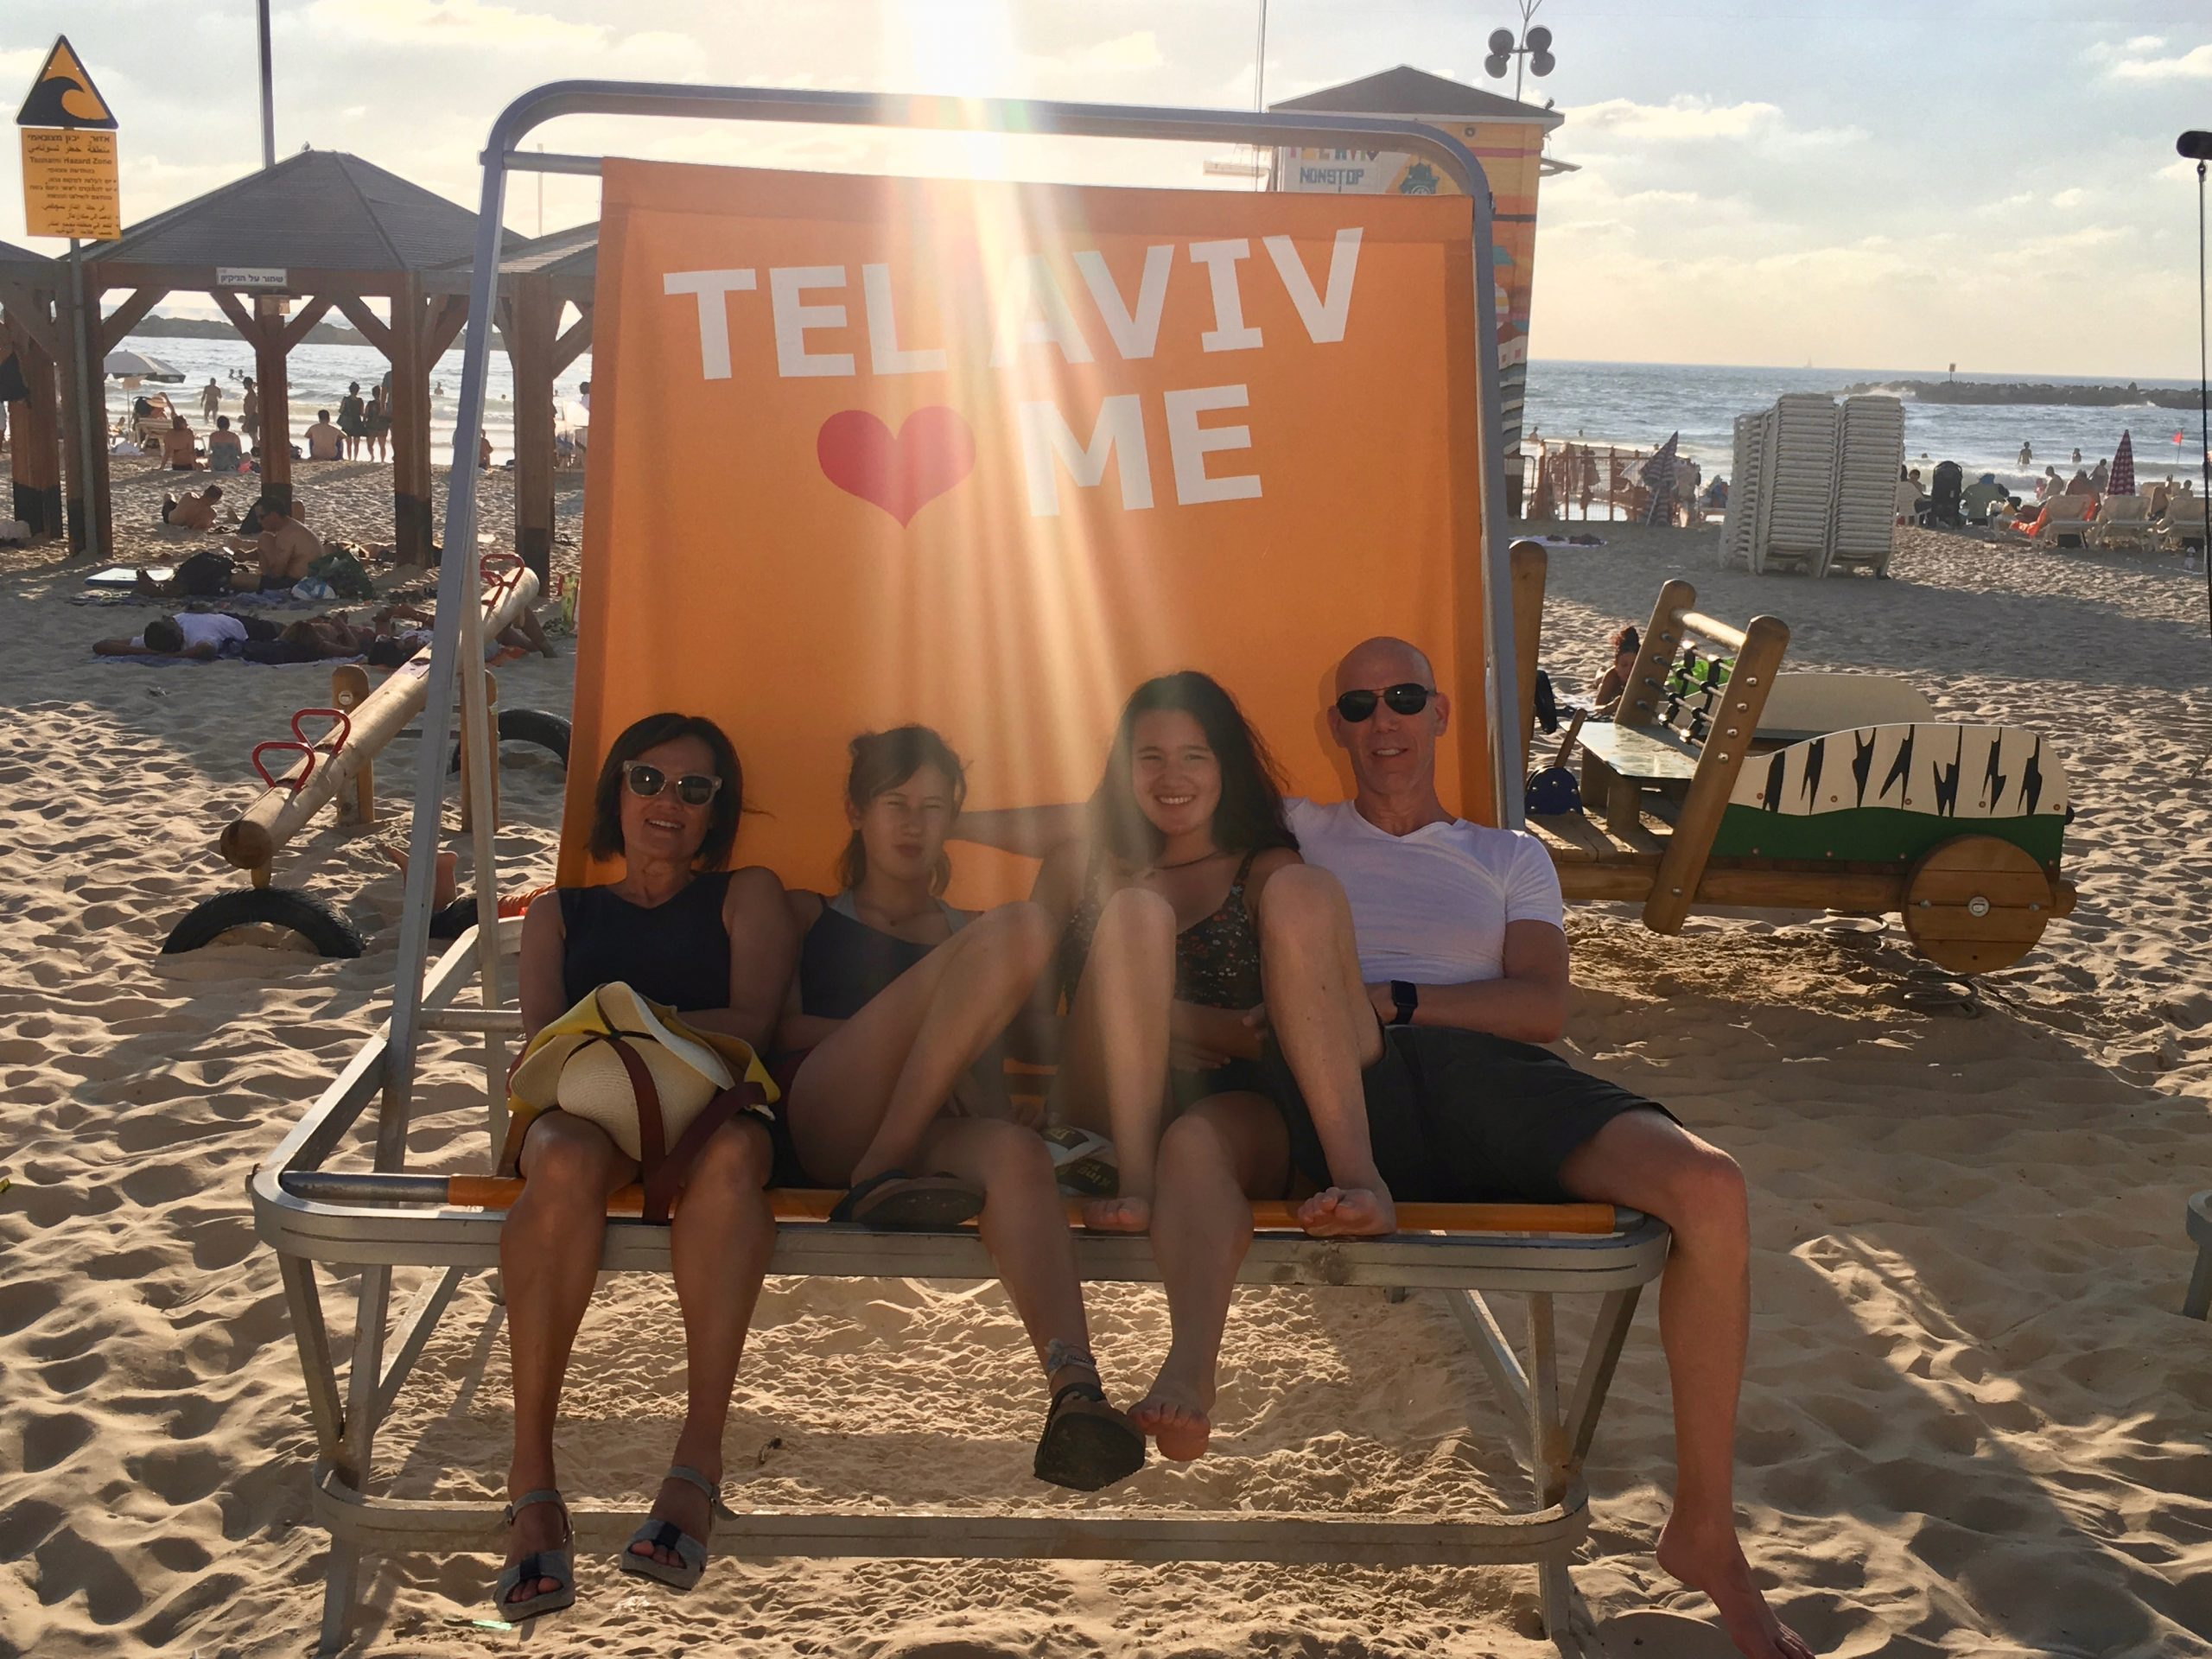 The Jaffe family, formerly of Berkeley, on the beach in Tel Aviv before the latest outbreak of violence in Israel.